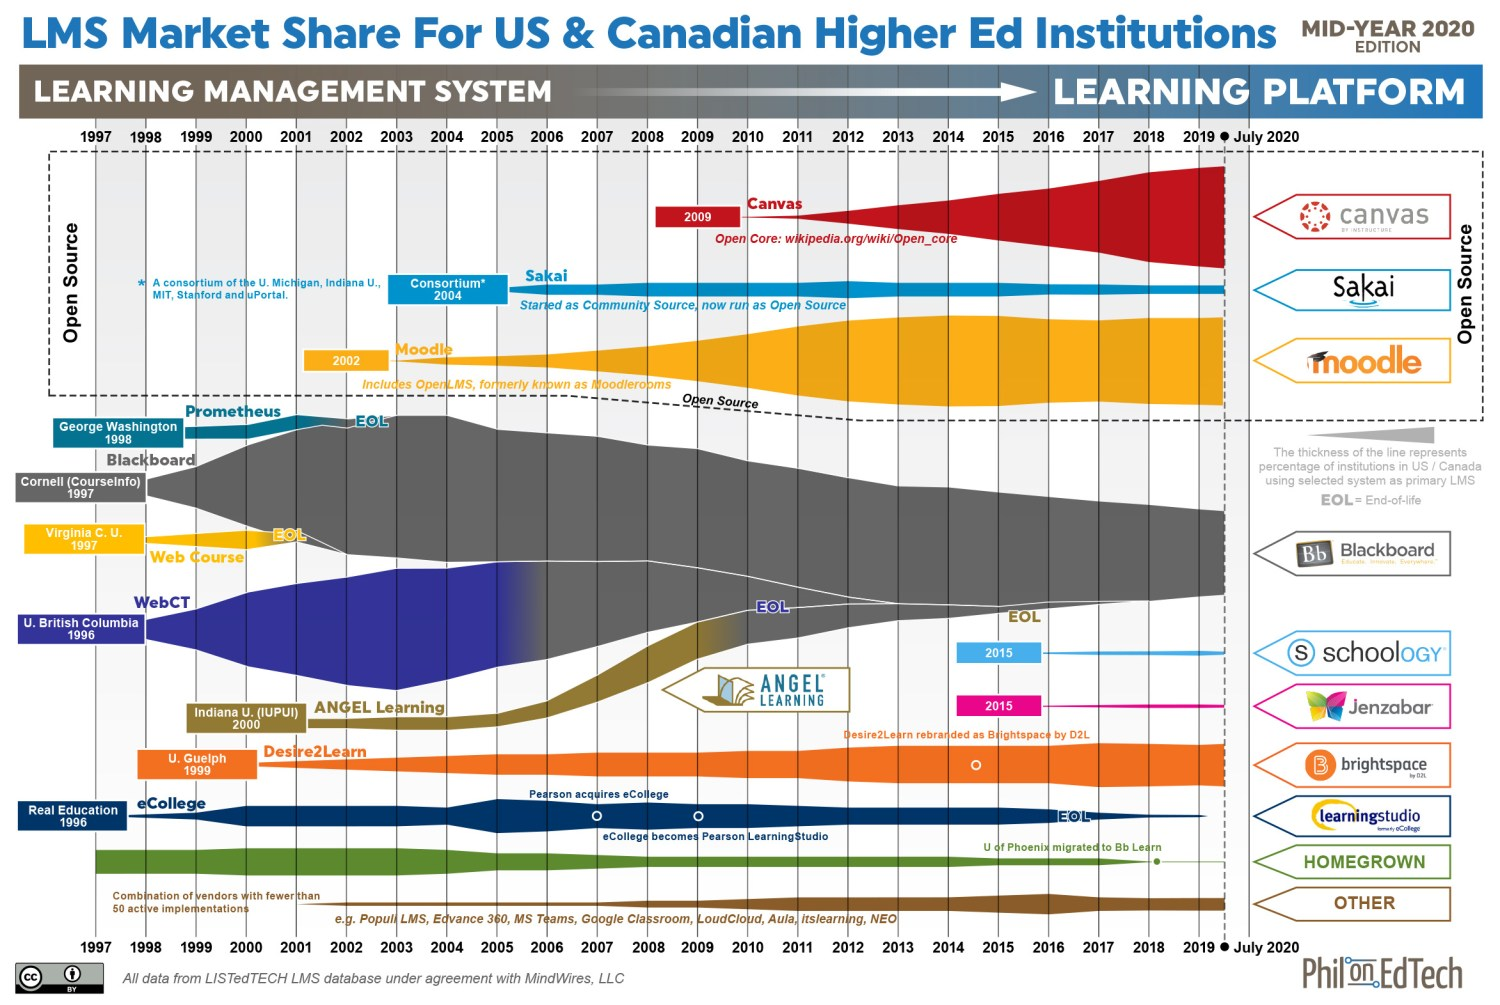 LMS market share for US and Canadian higher ed institutions - the squid graphic for mid-year 2020